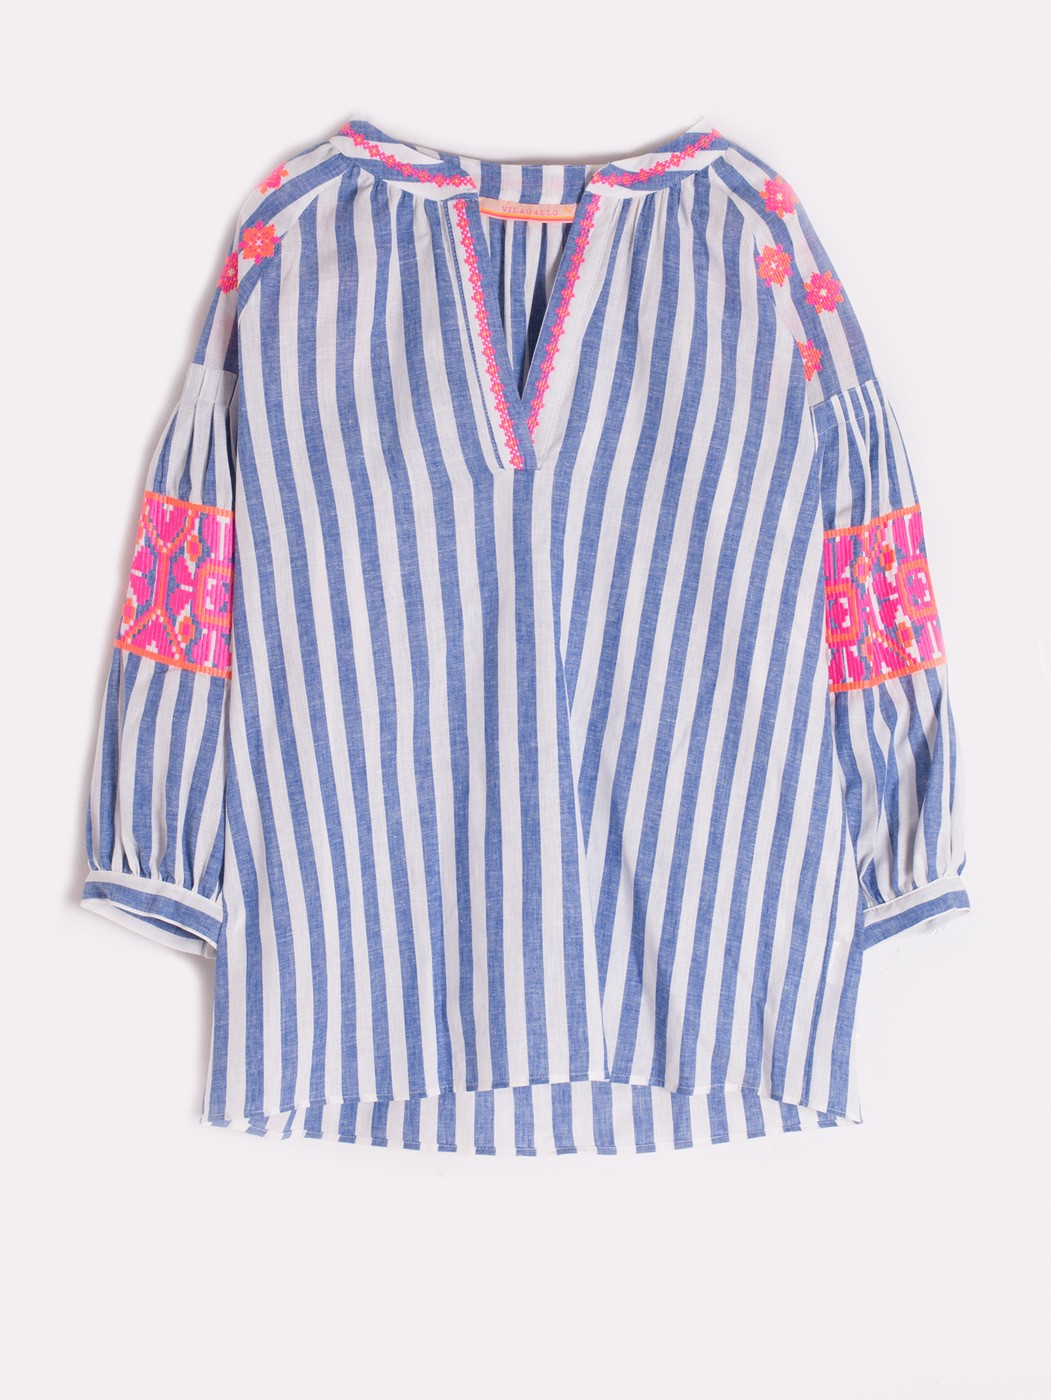 599b04e408a NICOLA EMBROIDERED SHIRT OCEAN STRIPE